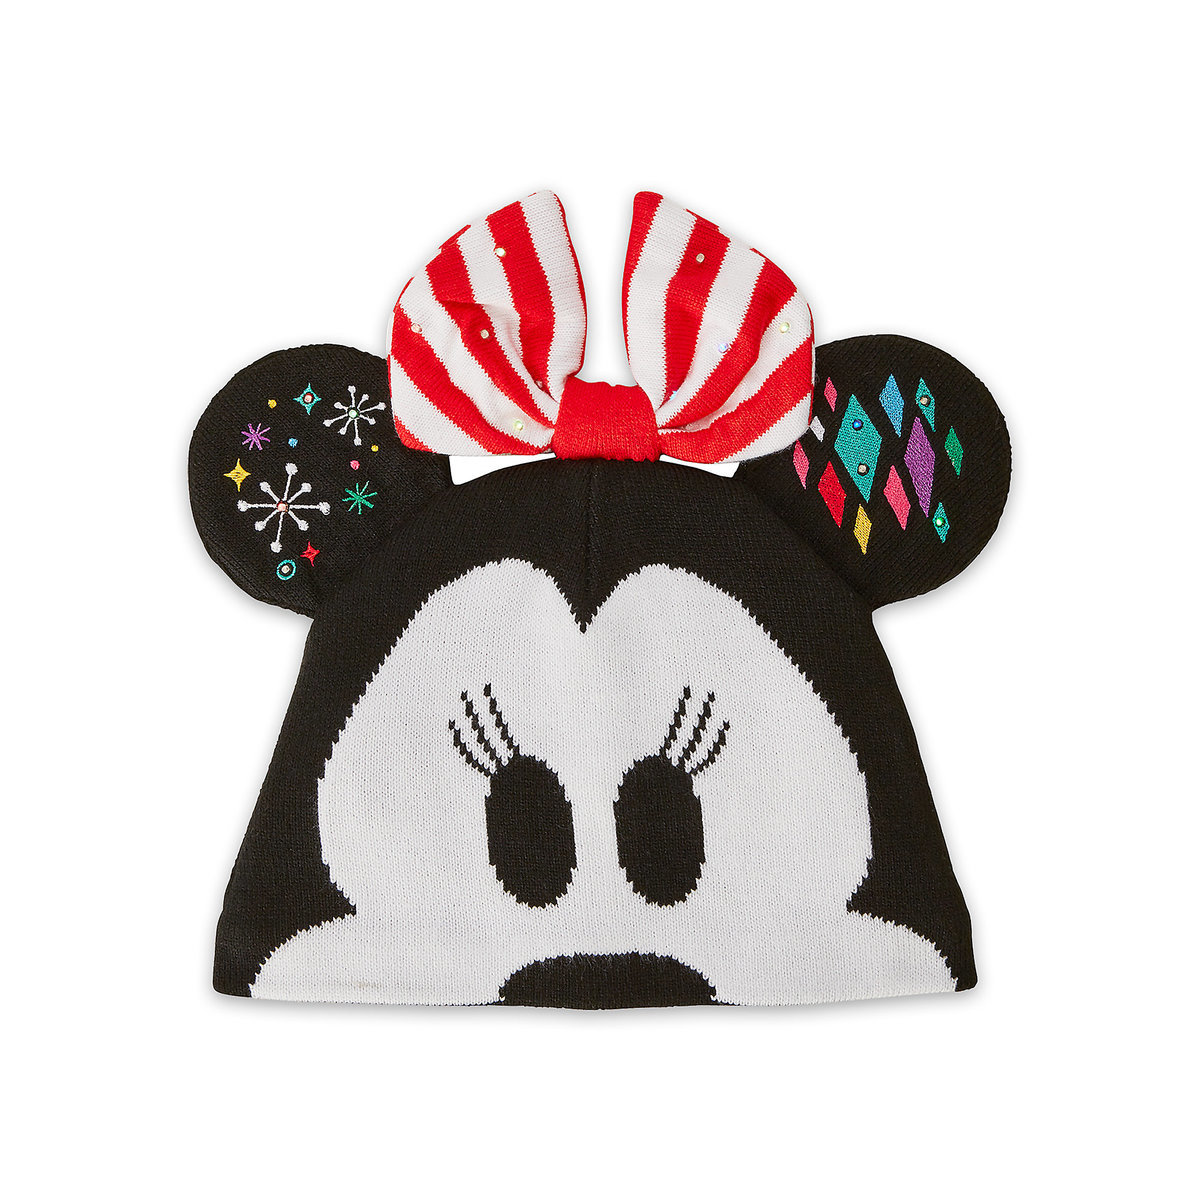 3da33eb0740 Product Image of Minnie Mouse Light-Up Knit Holiday Ear Hat for Kids   1